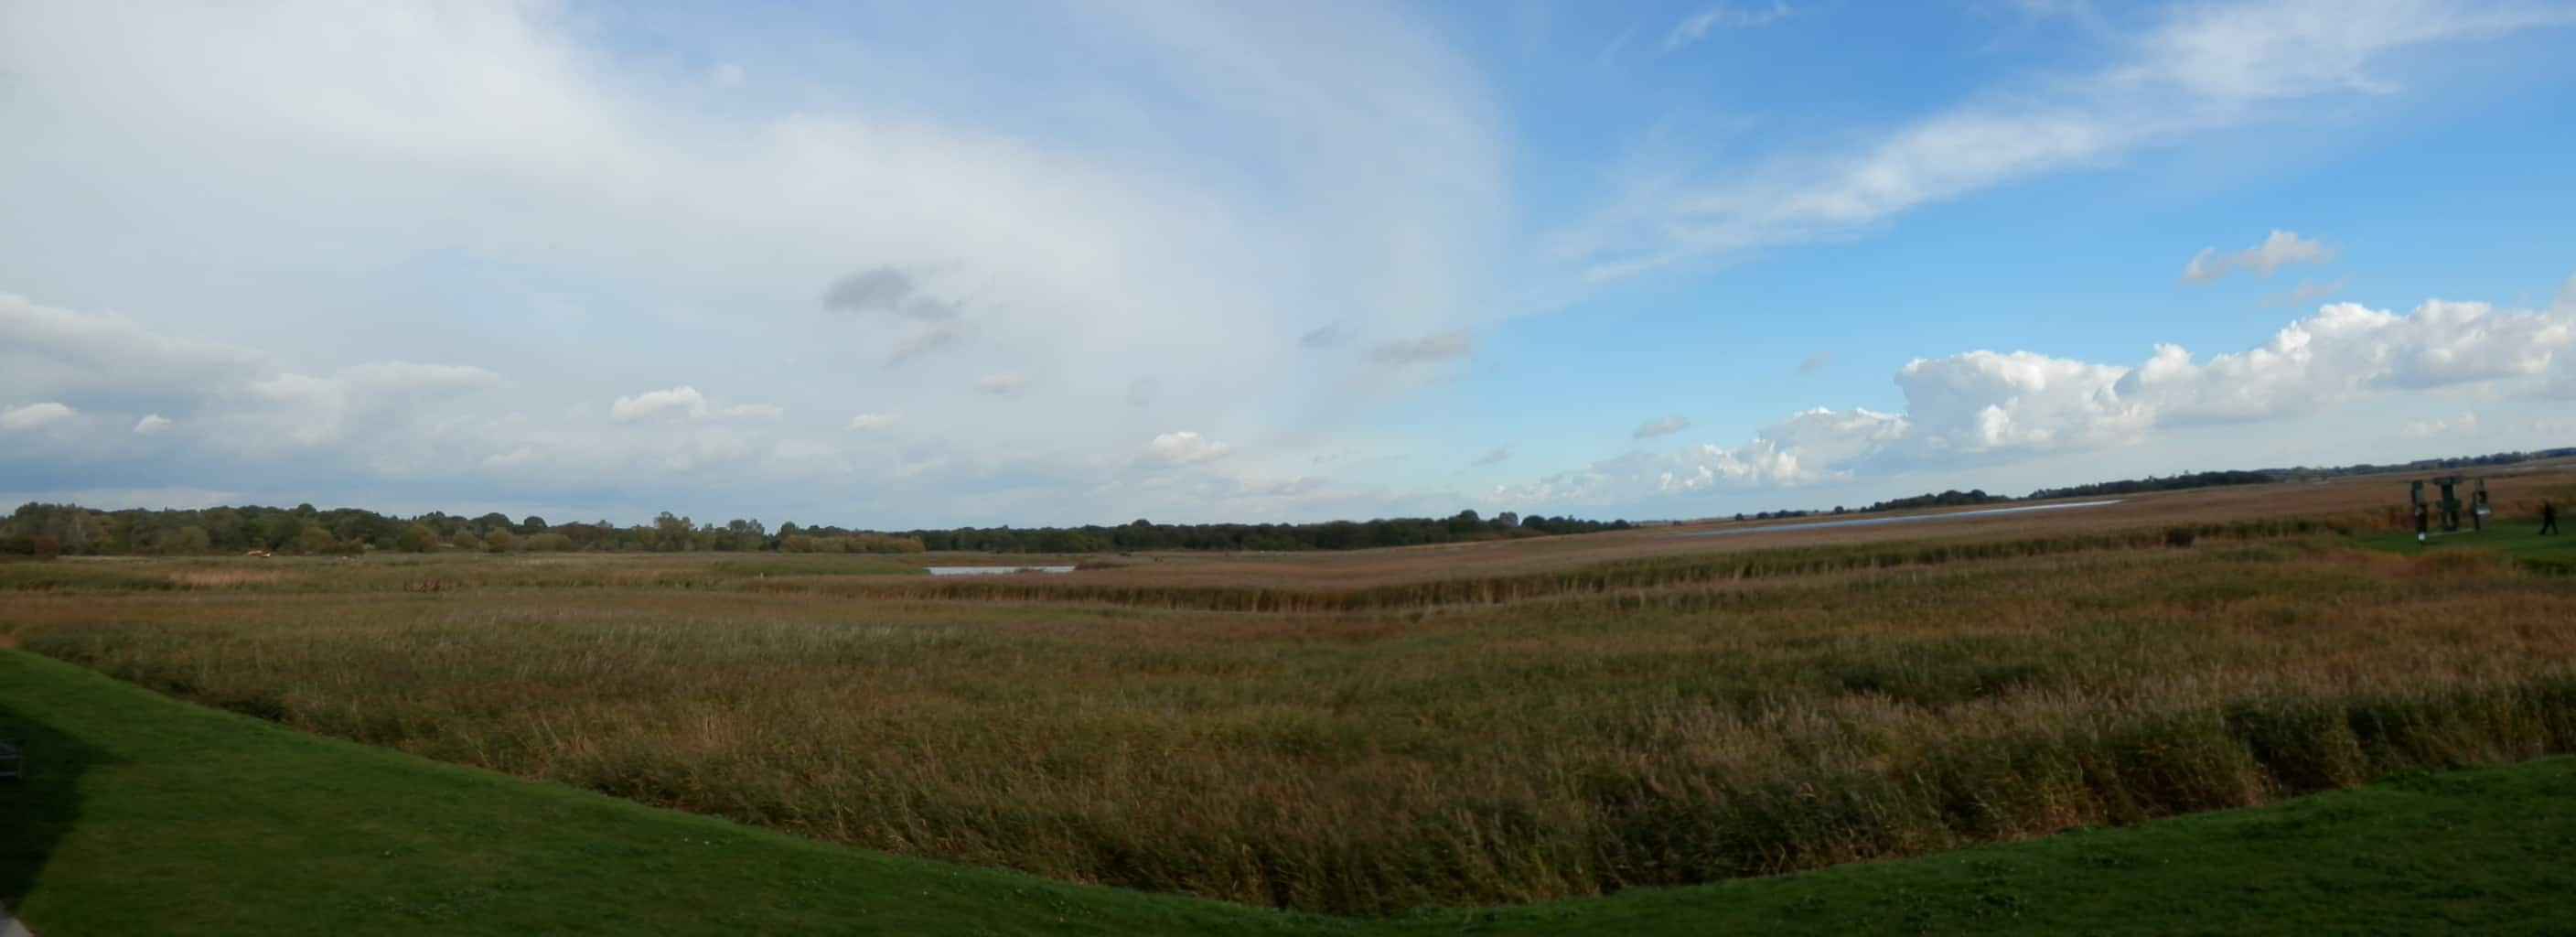 Snape Maltings looking over the reedbeds